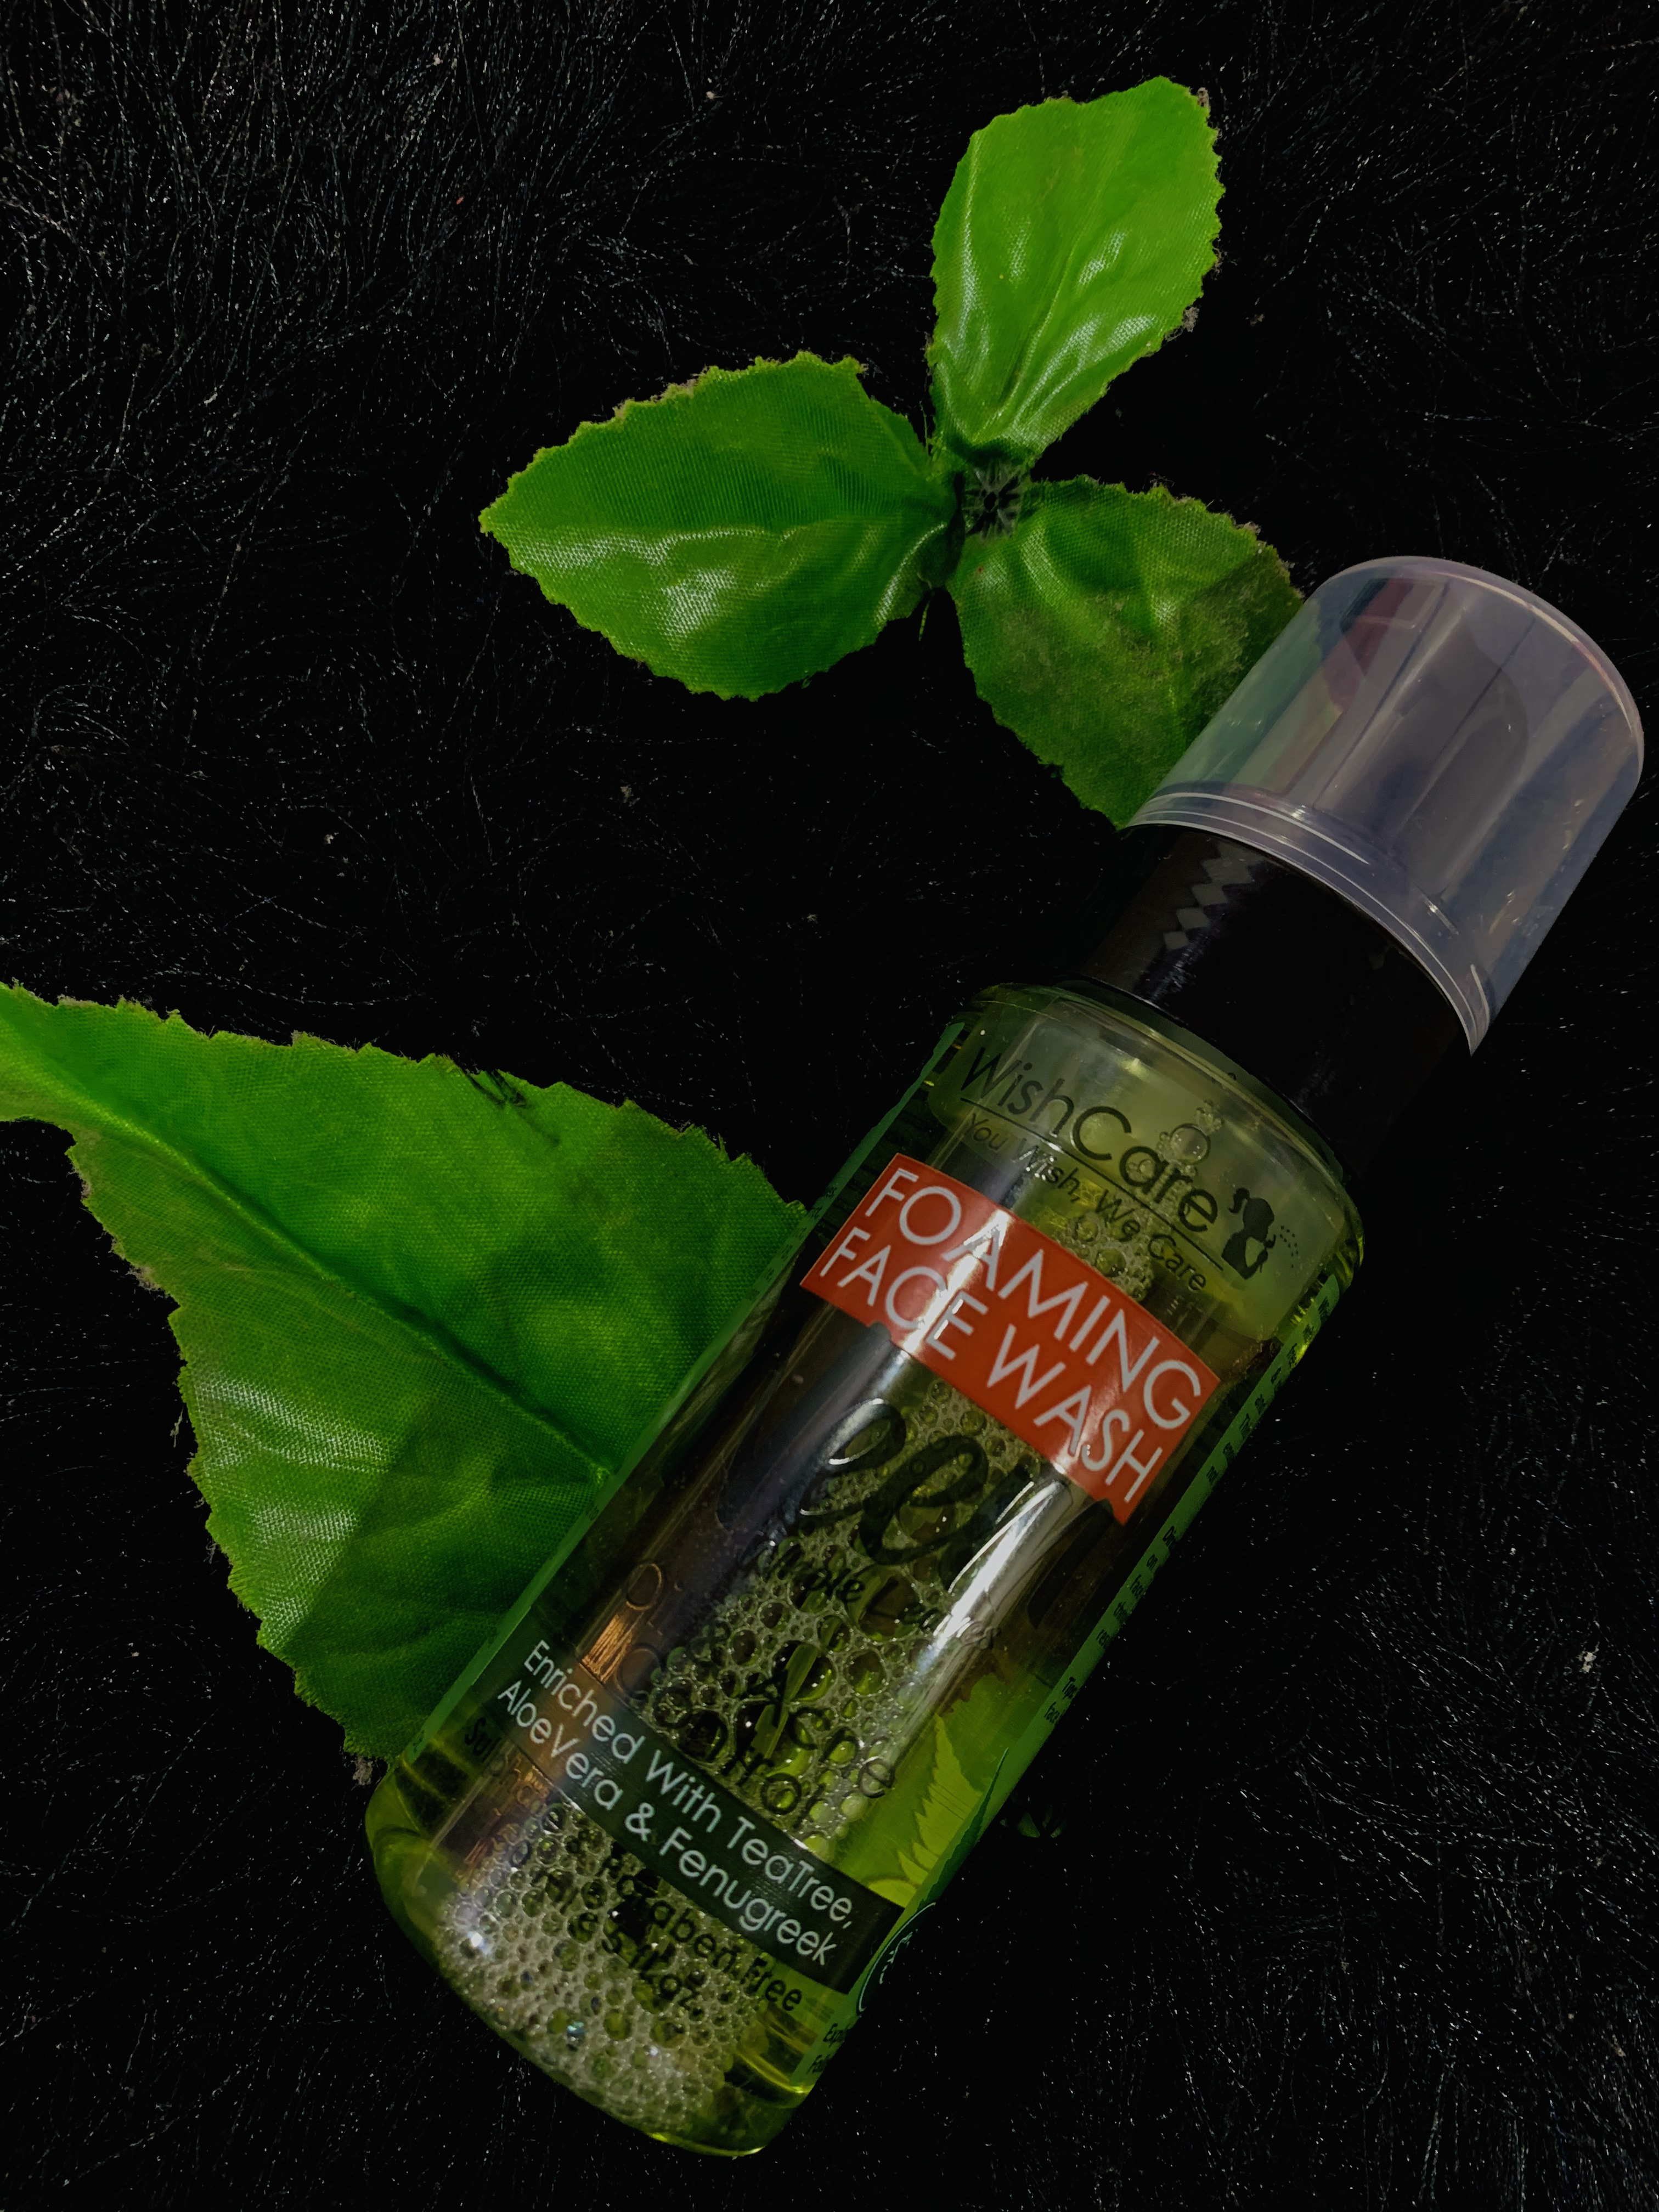 WishCare Foaming Neem Face Wash -Foam Face Washes are better than the others-By anmol_mulchandani